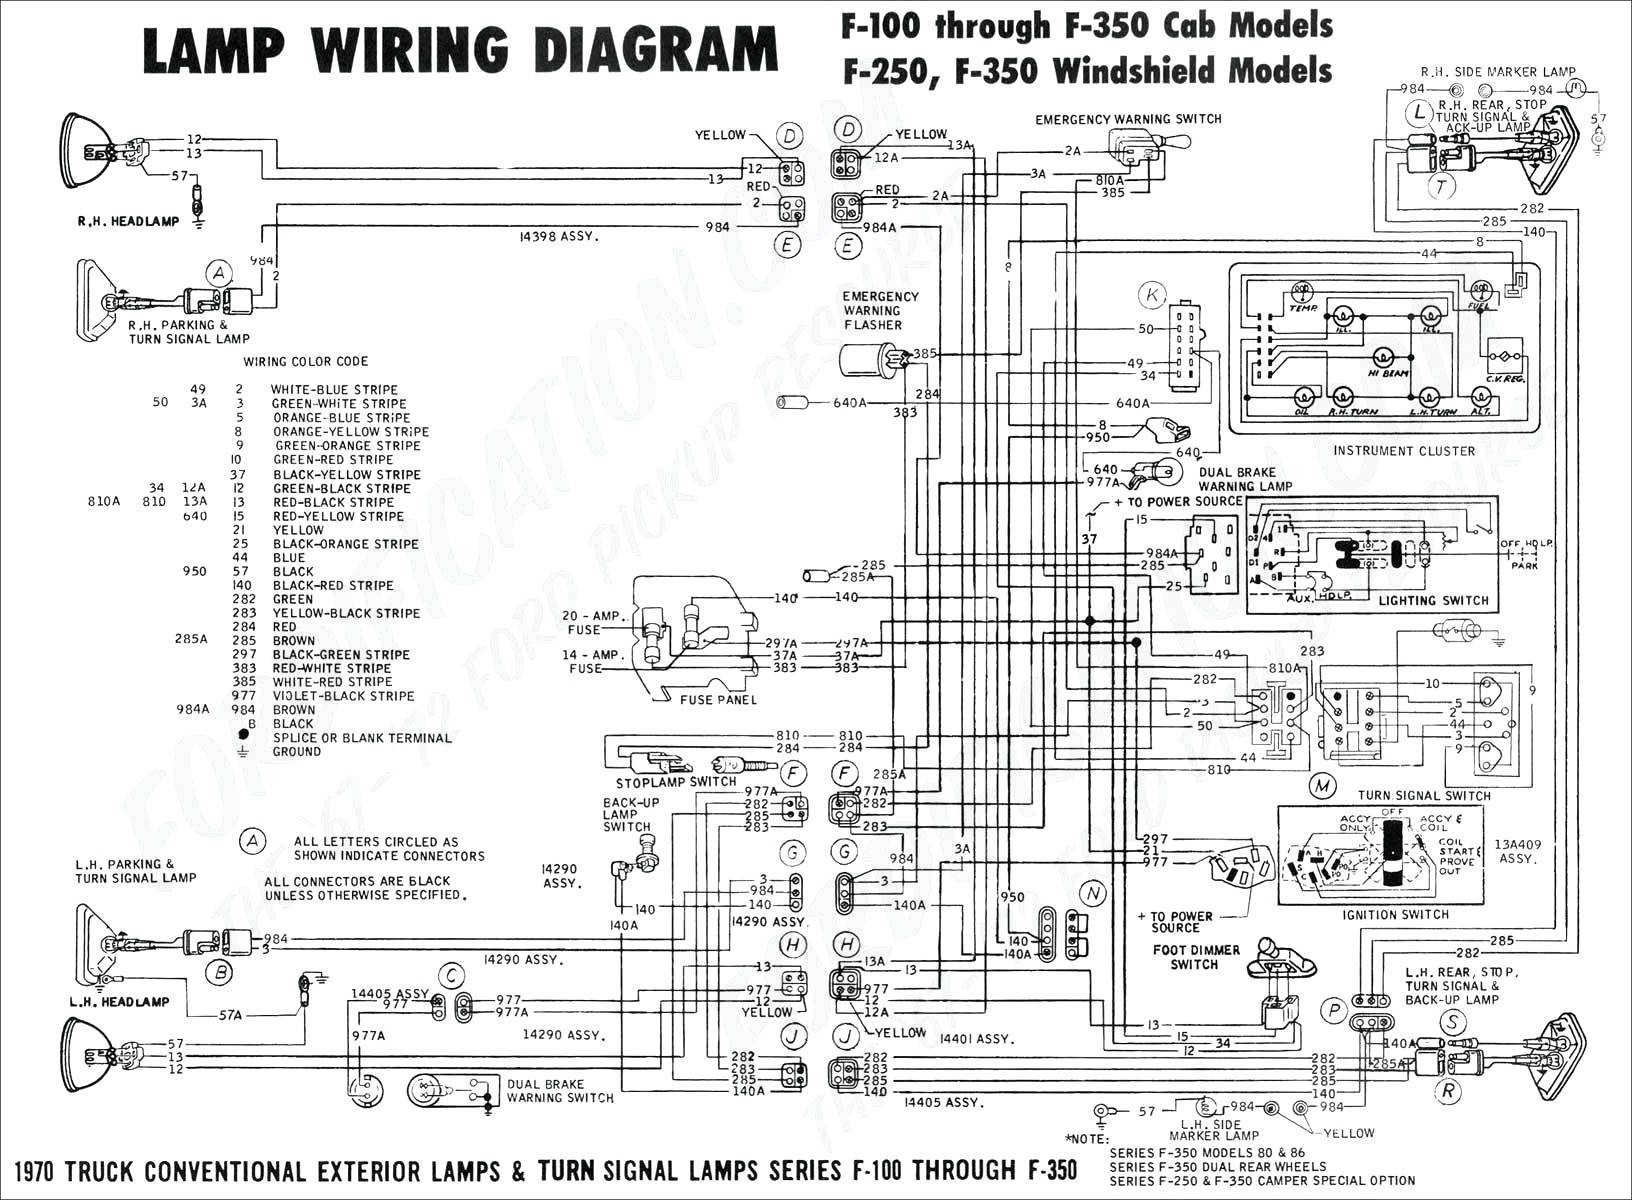 4900 international truck wiring diagram - 2005 dodge ram fuse diagram -  hazzardzz.yenpancane.jeanjaures37.fr  wiring diagram resource